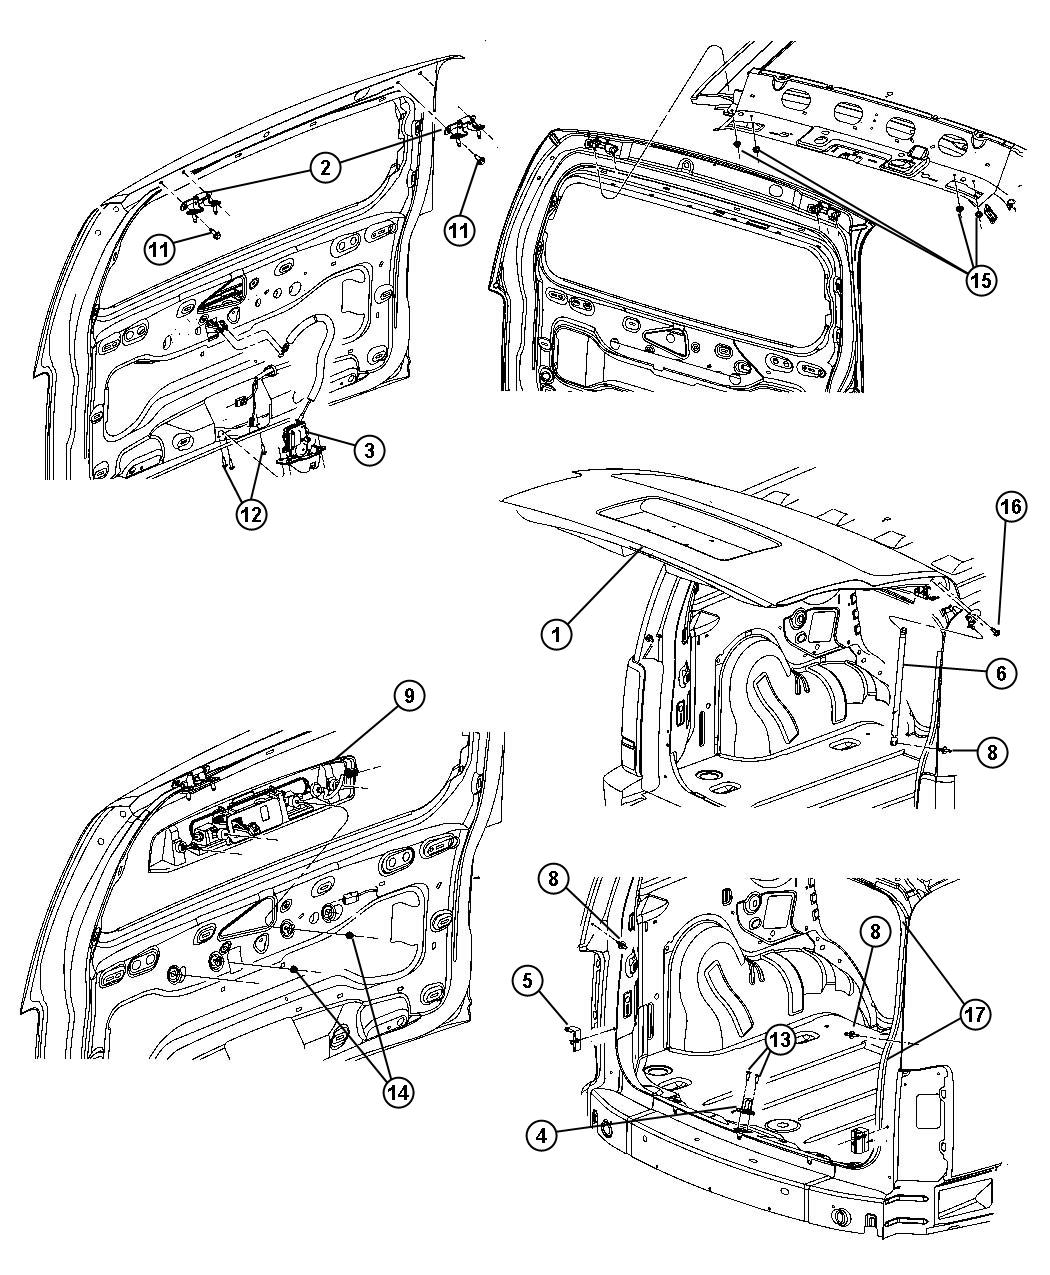 jeep jk front bumper parts diagram  jeep  auto wiring diagram